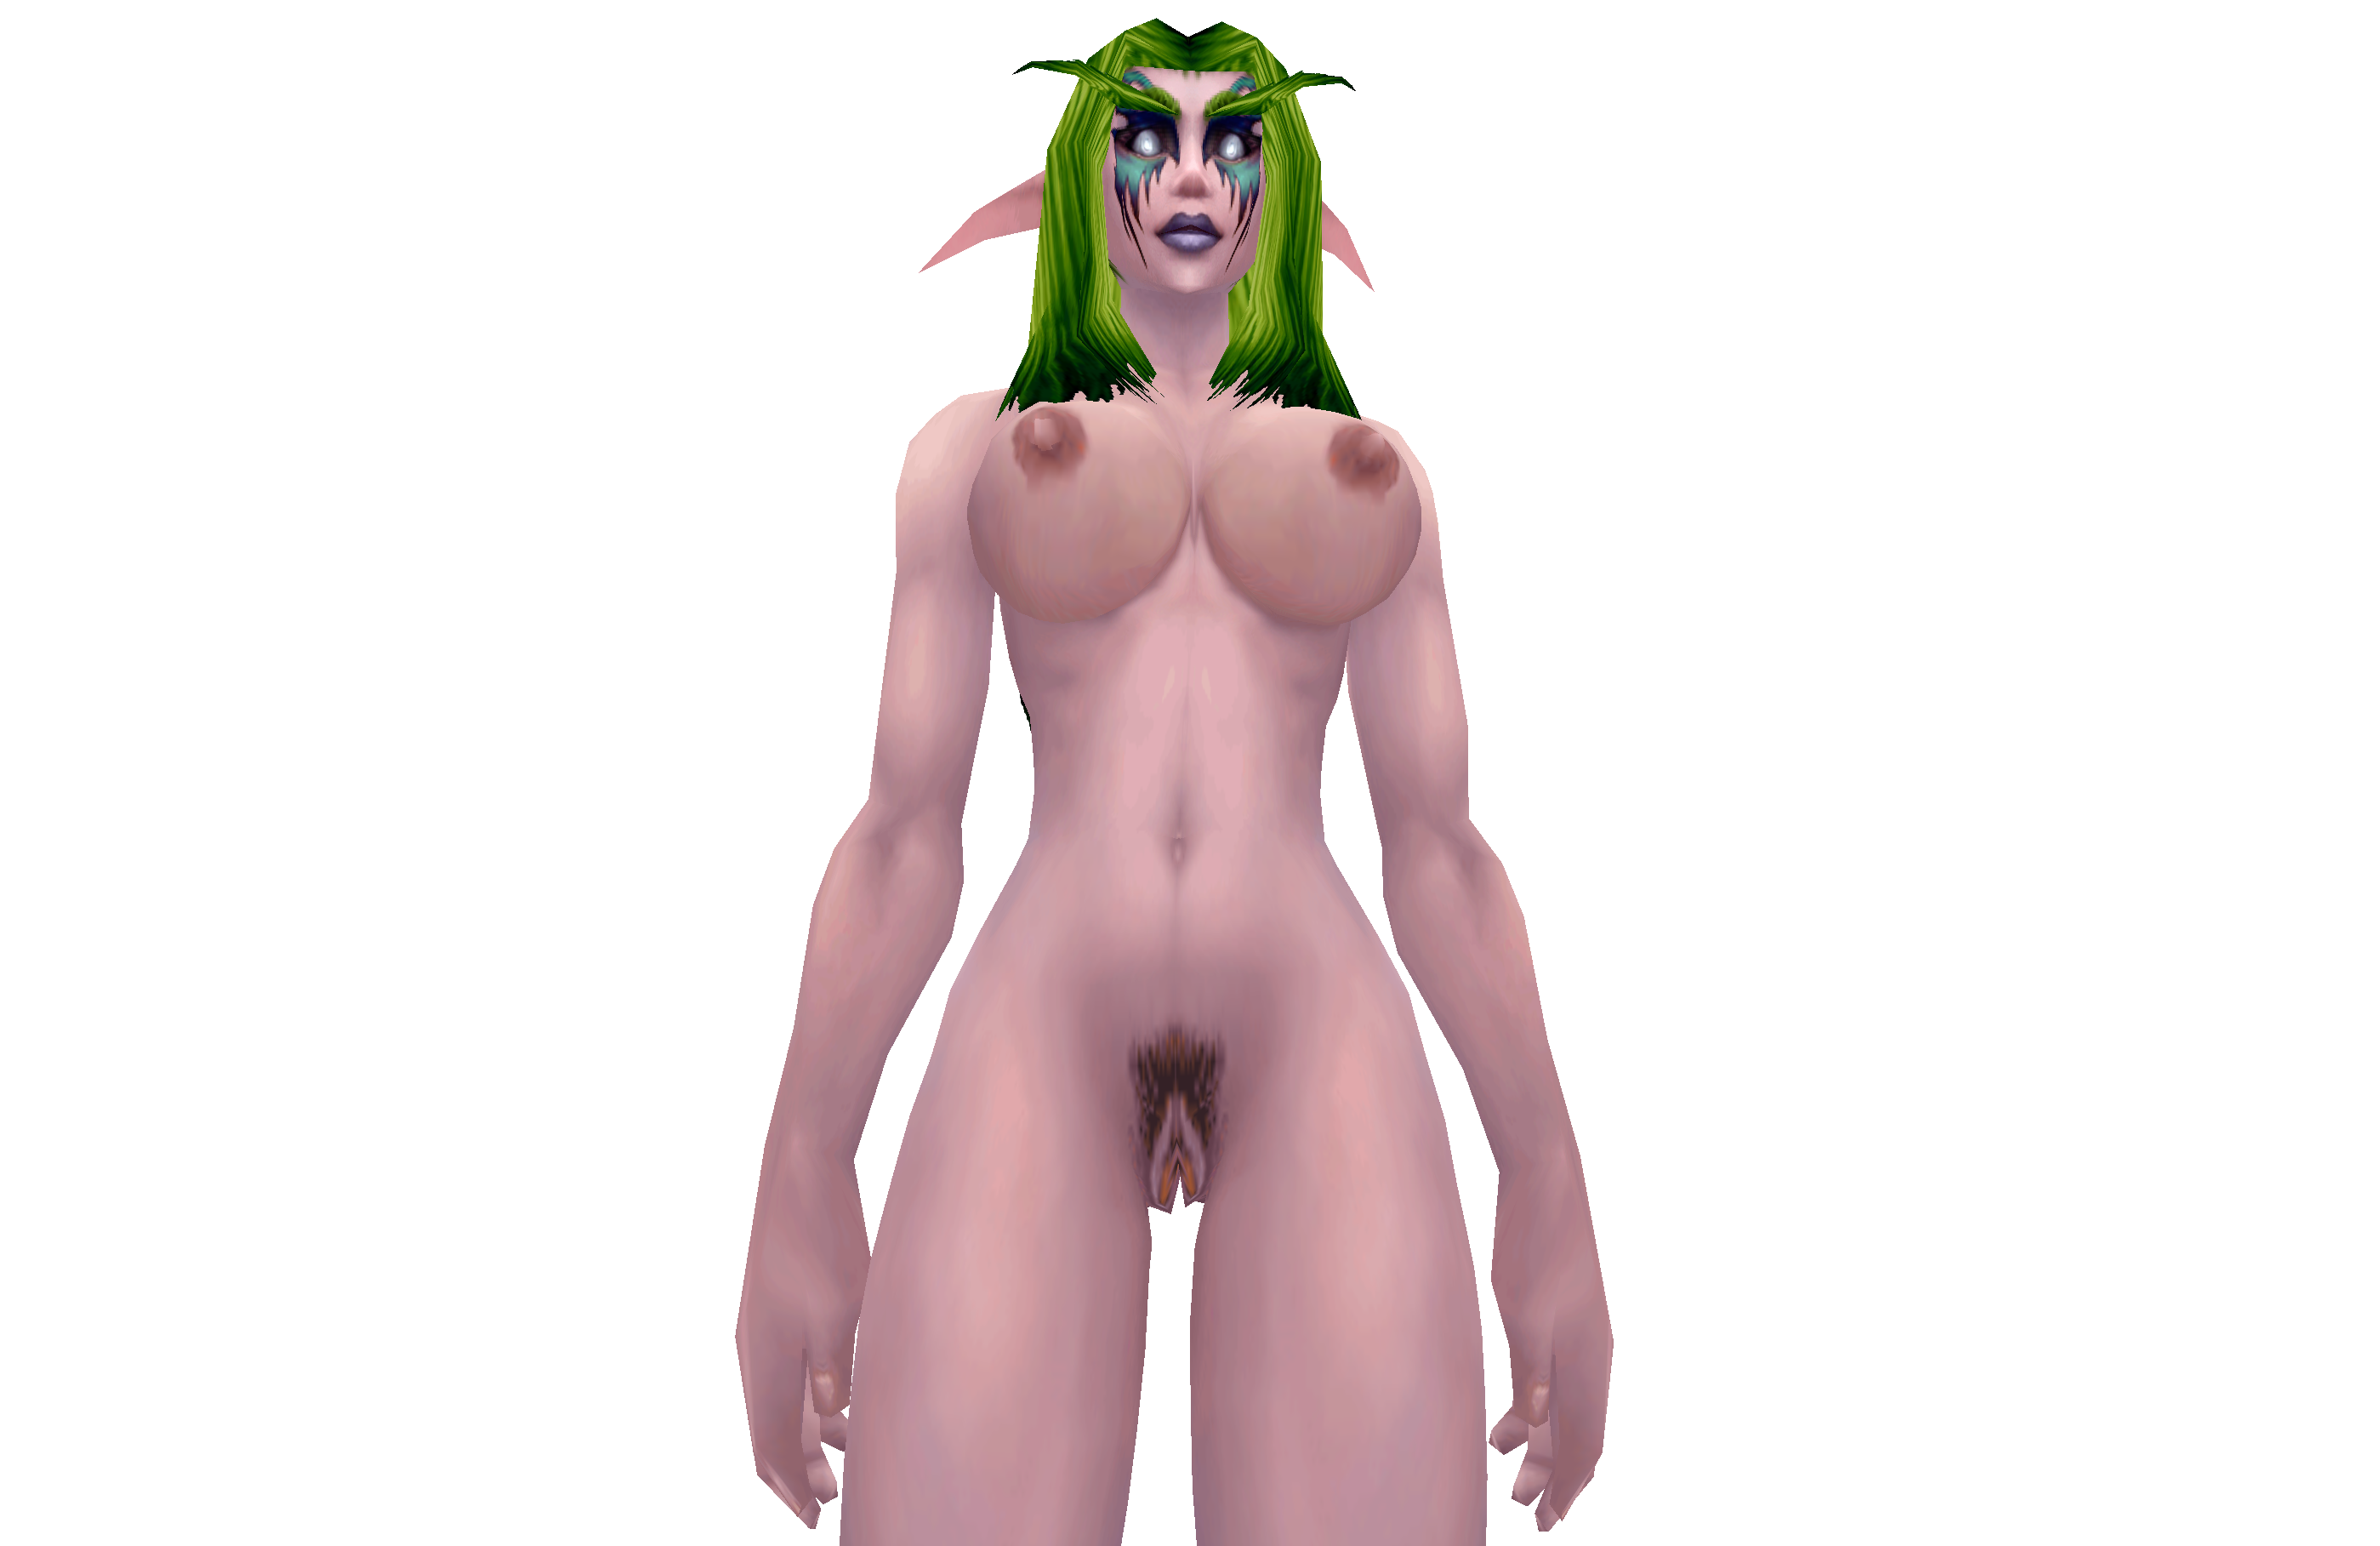 World of warcraft nude patches transparent sex image